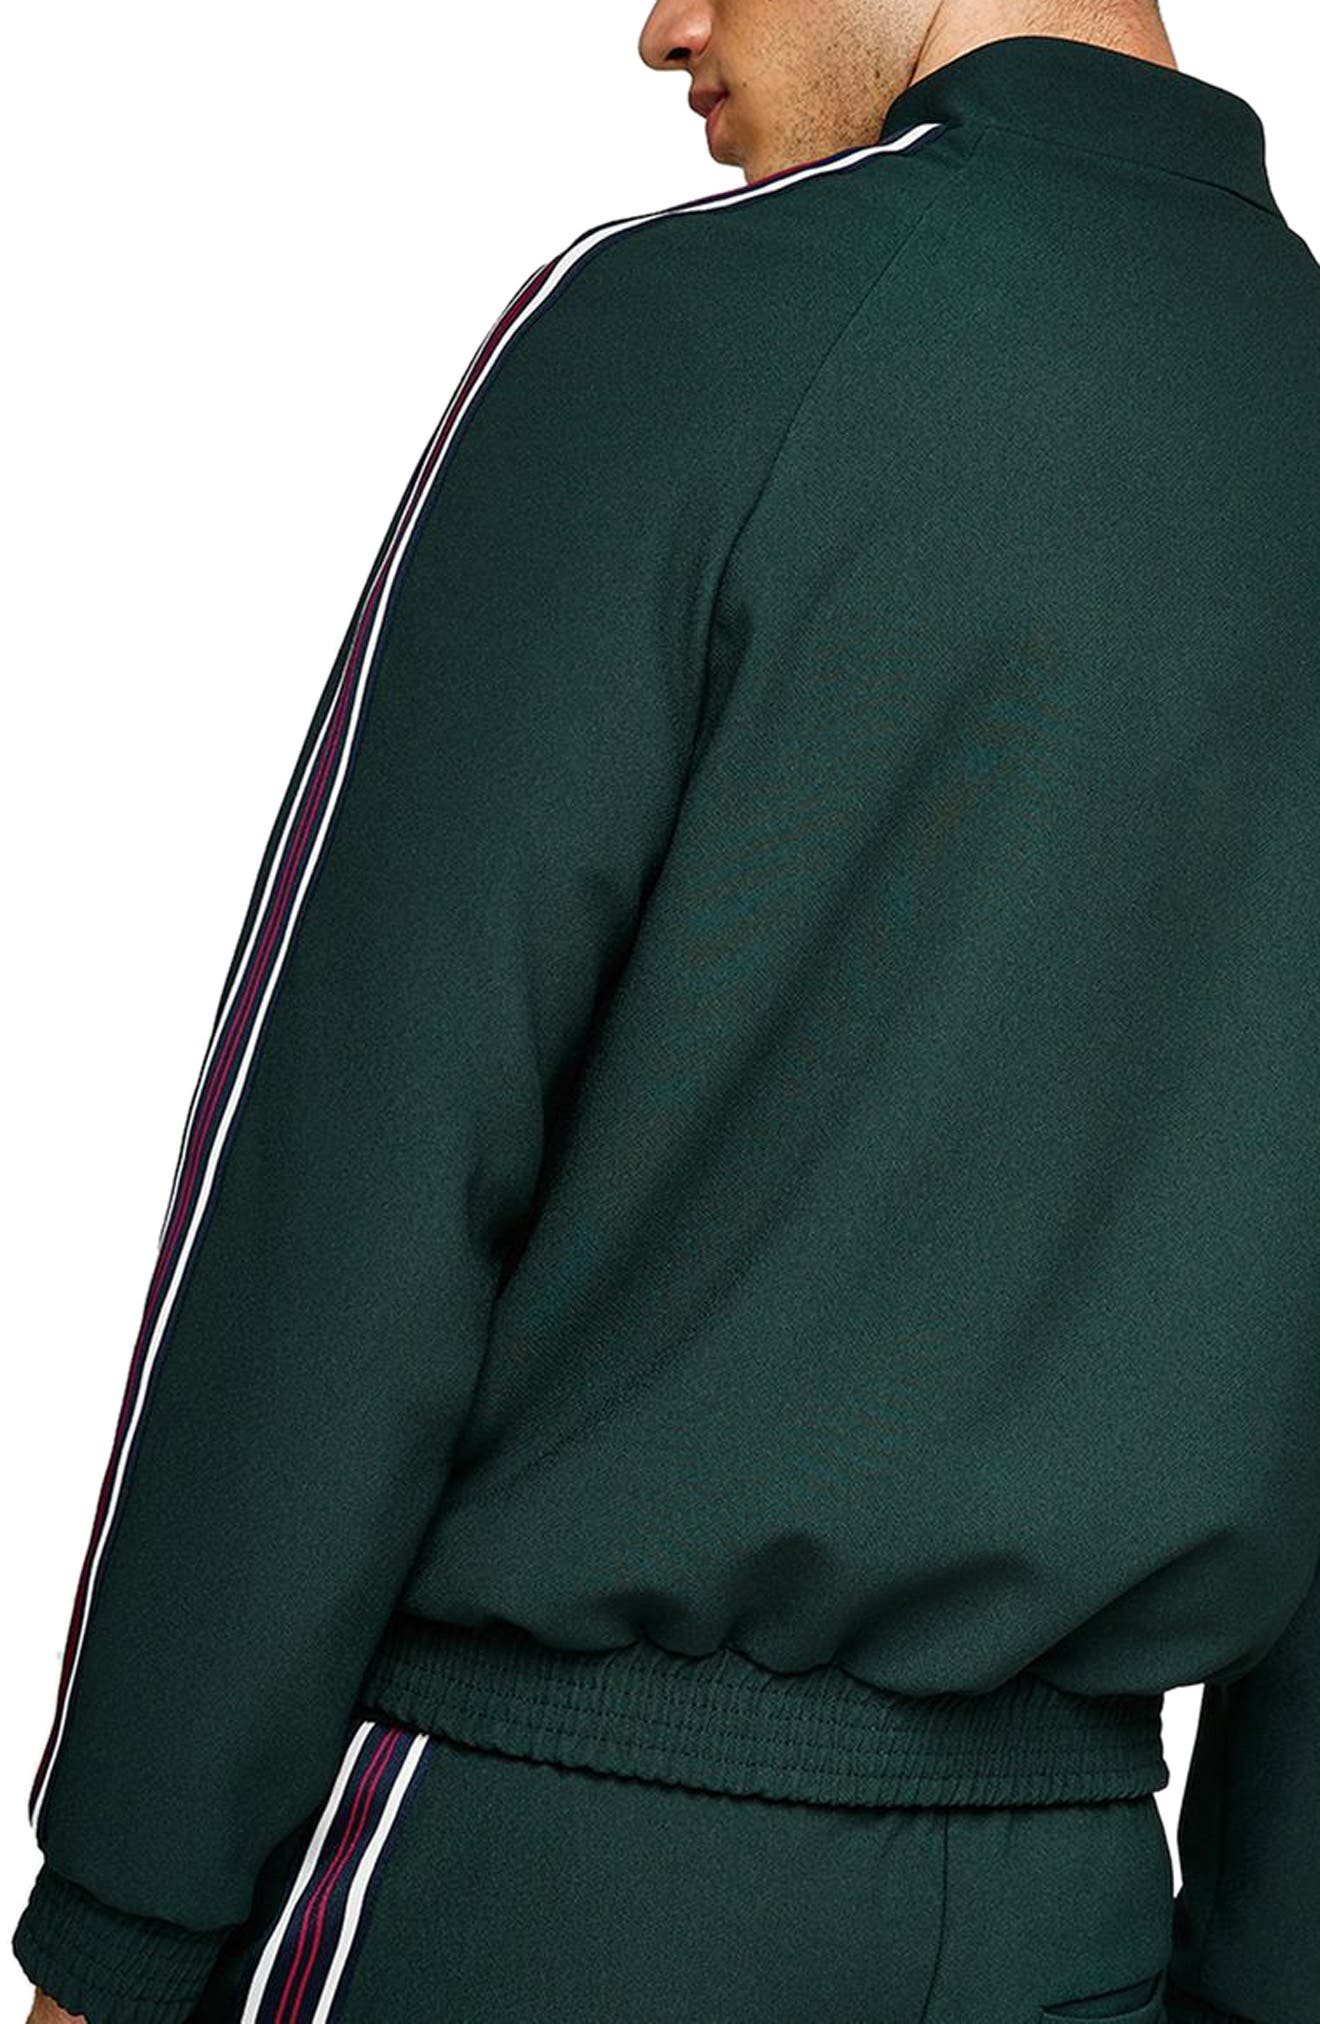 Track Jacket,                             Alternate thumbnail 2, color,                             Green Multi